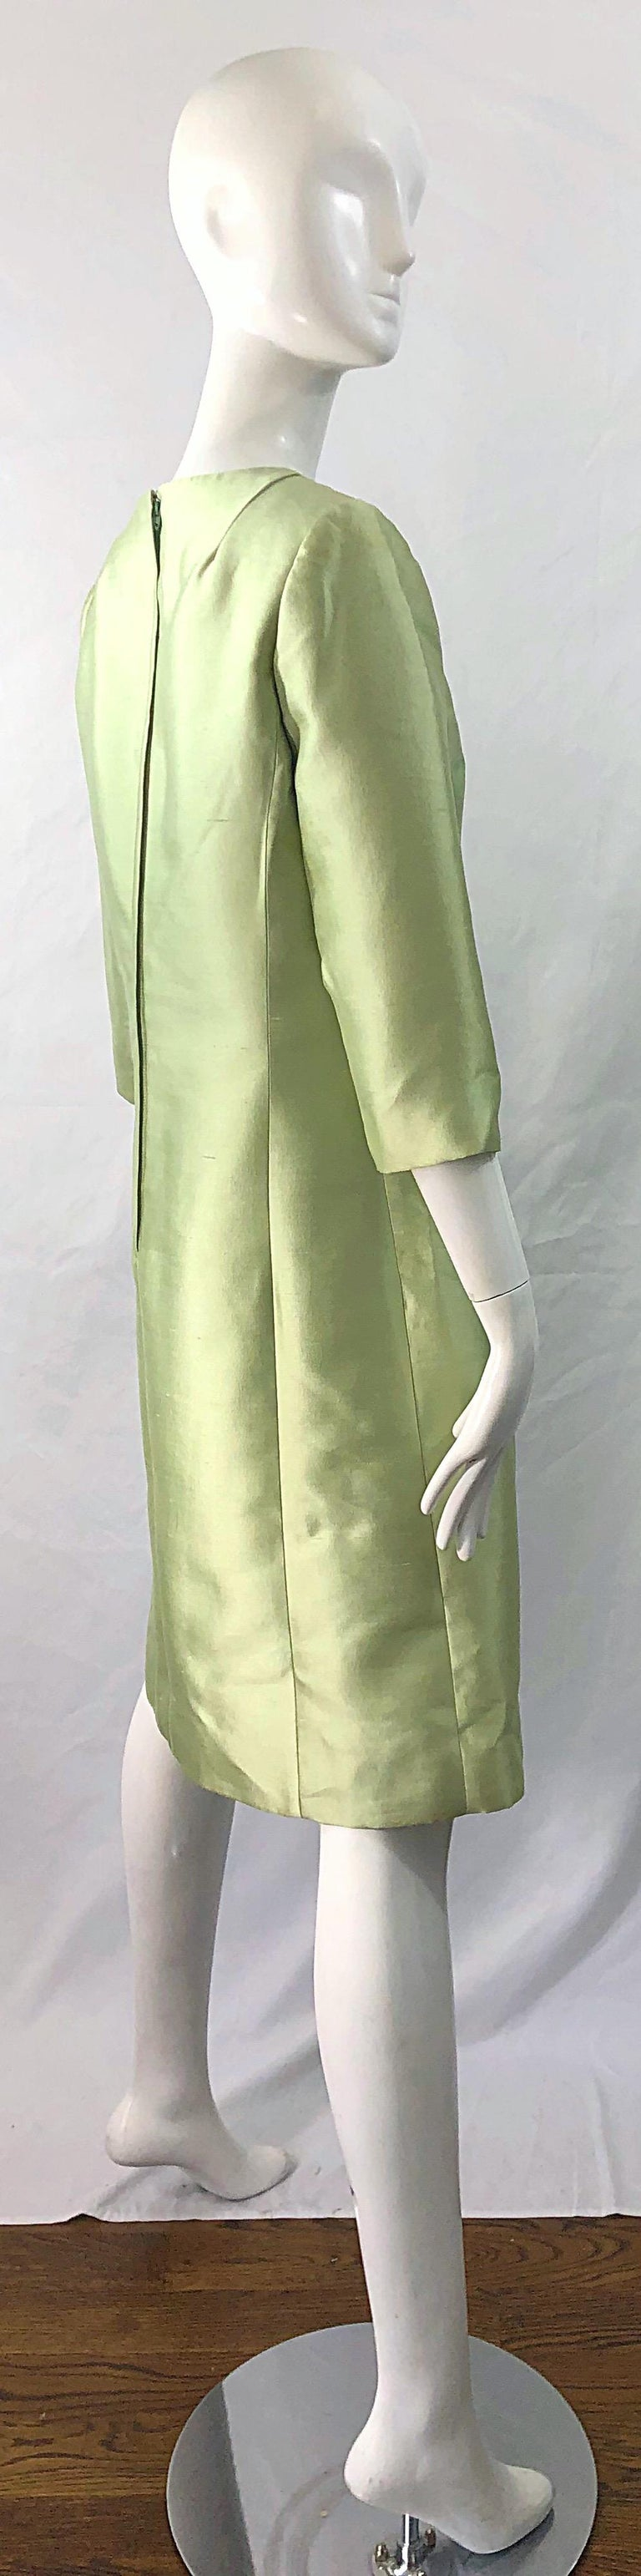 Gray Chic 1960s Mint Green Silk Shantung Rhinestone Vintage 60s A Line Dress For Sale